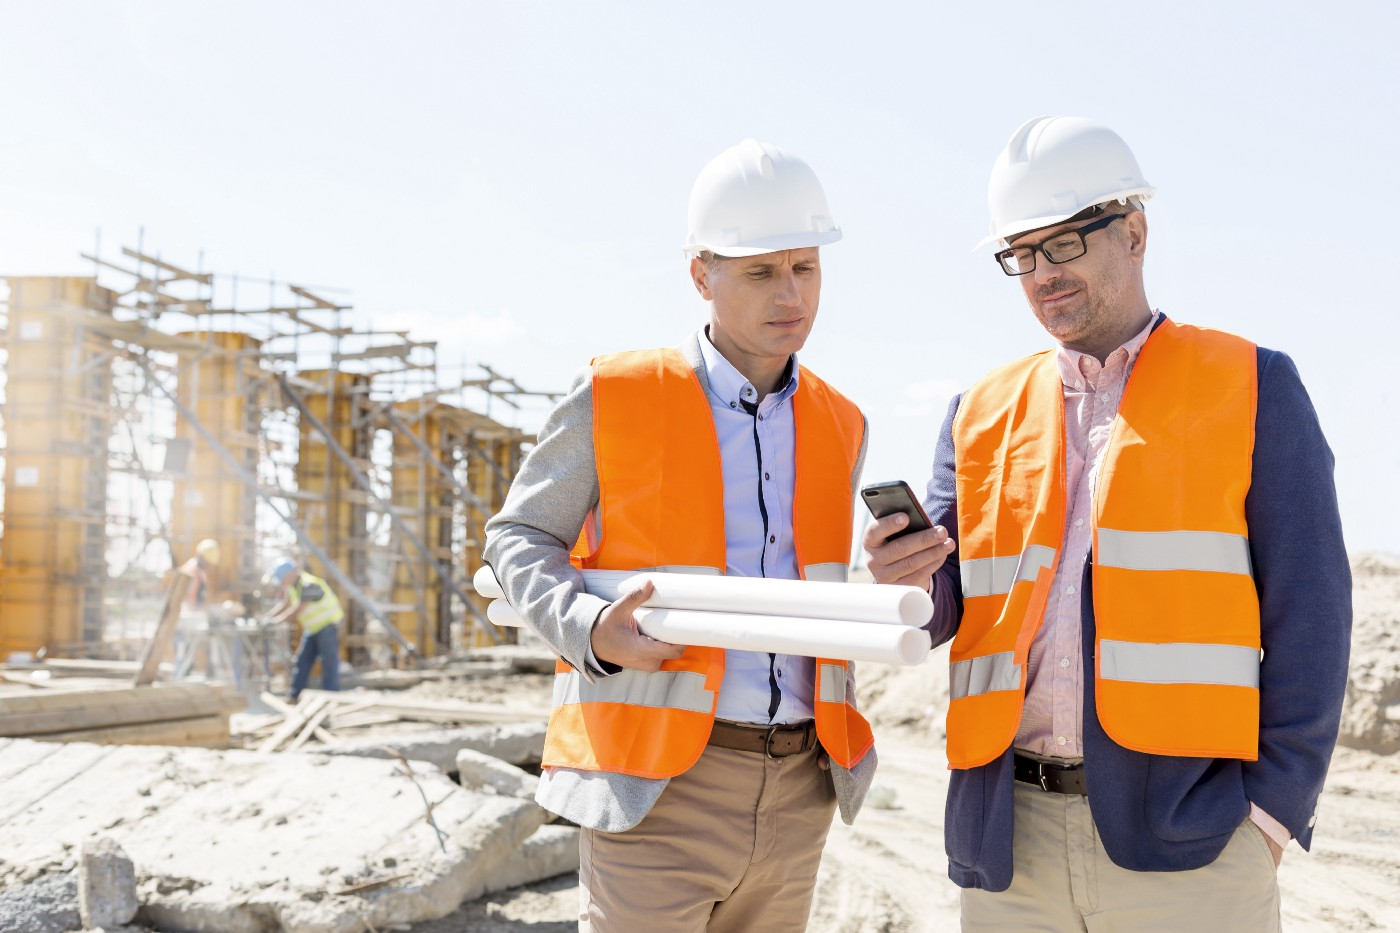 Two male engineers look at a mobile phone to see the Maturix platform at a construction site under a clear, sunny sky.